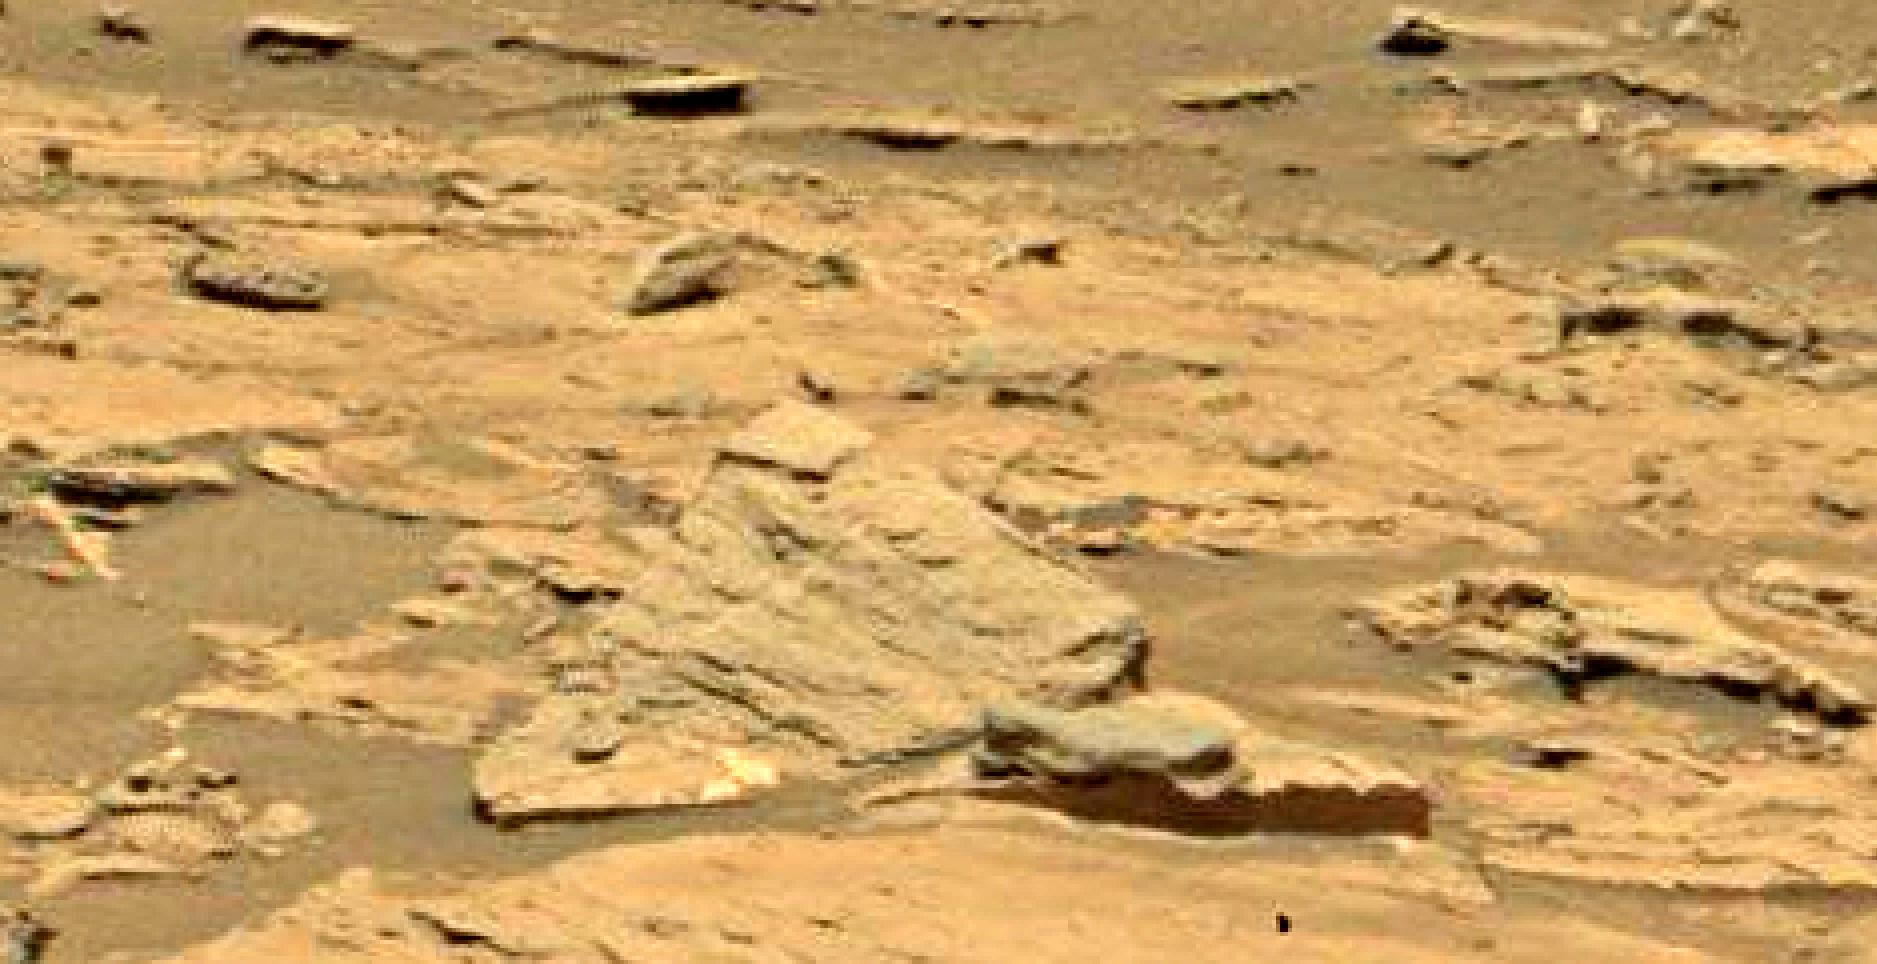 mars sol 1353 anomaly-artifacts 2 was life on mars